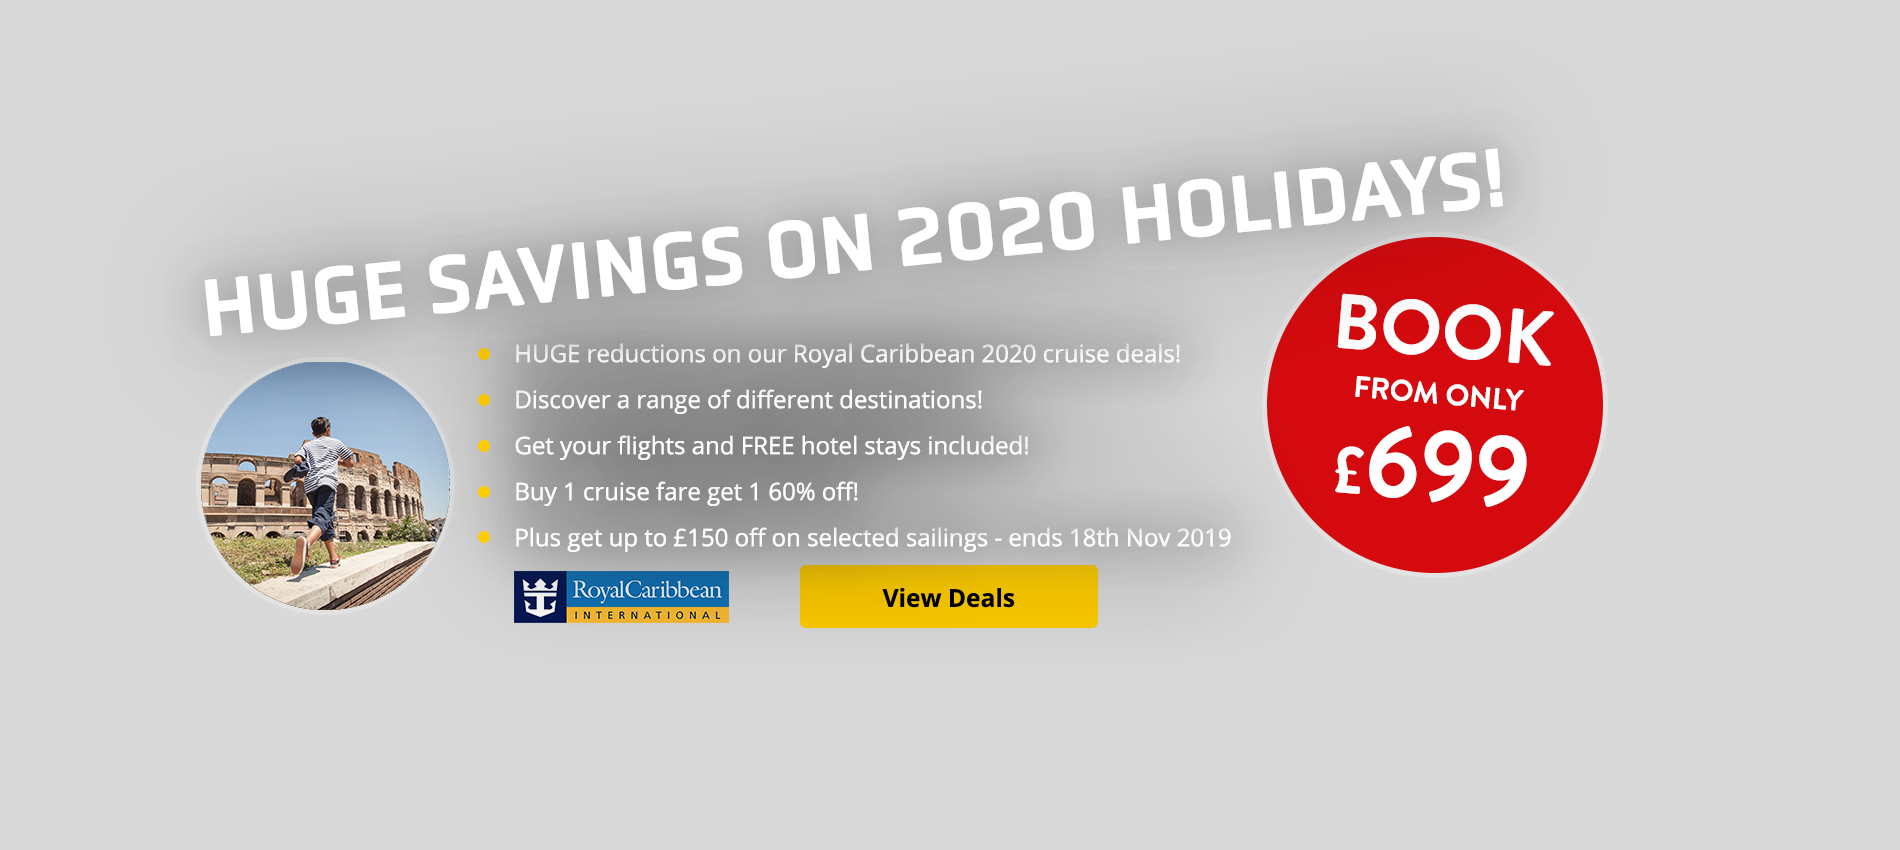 HUGE reductions on our Royal Caribbean 2020 cruise deals! Discover a range of different destinations! Get your flights and FREE hotel stays included! Buy 1 cruise fare get 1 60% off! Plus get up to $150 onboard spend!